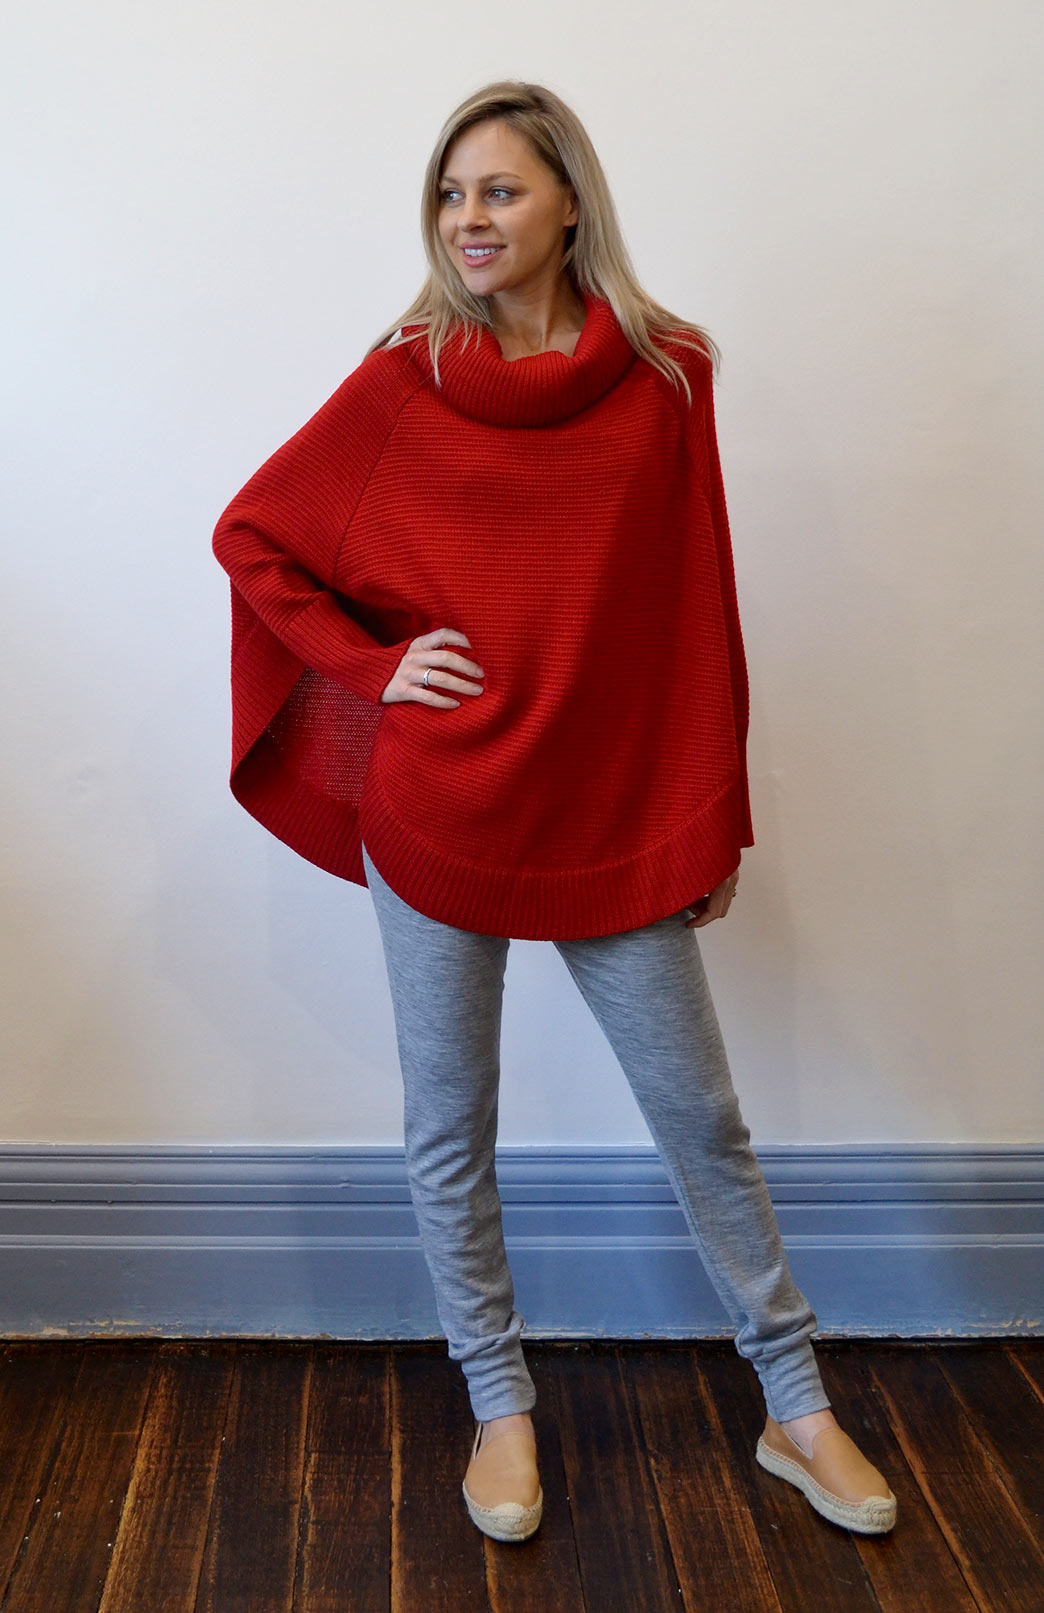 Chunky Cowl Neck Poncho with Sleeves - Women's Red Wool Poncho with cowl neck line and sleeves - Smitten Merino Tasmania Australia